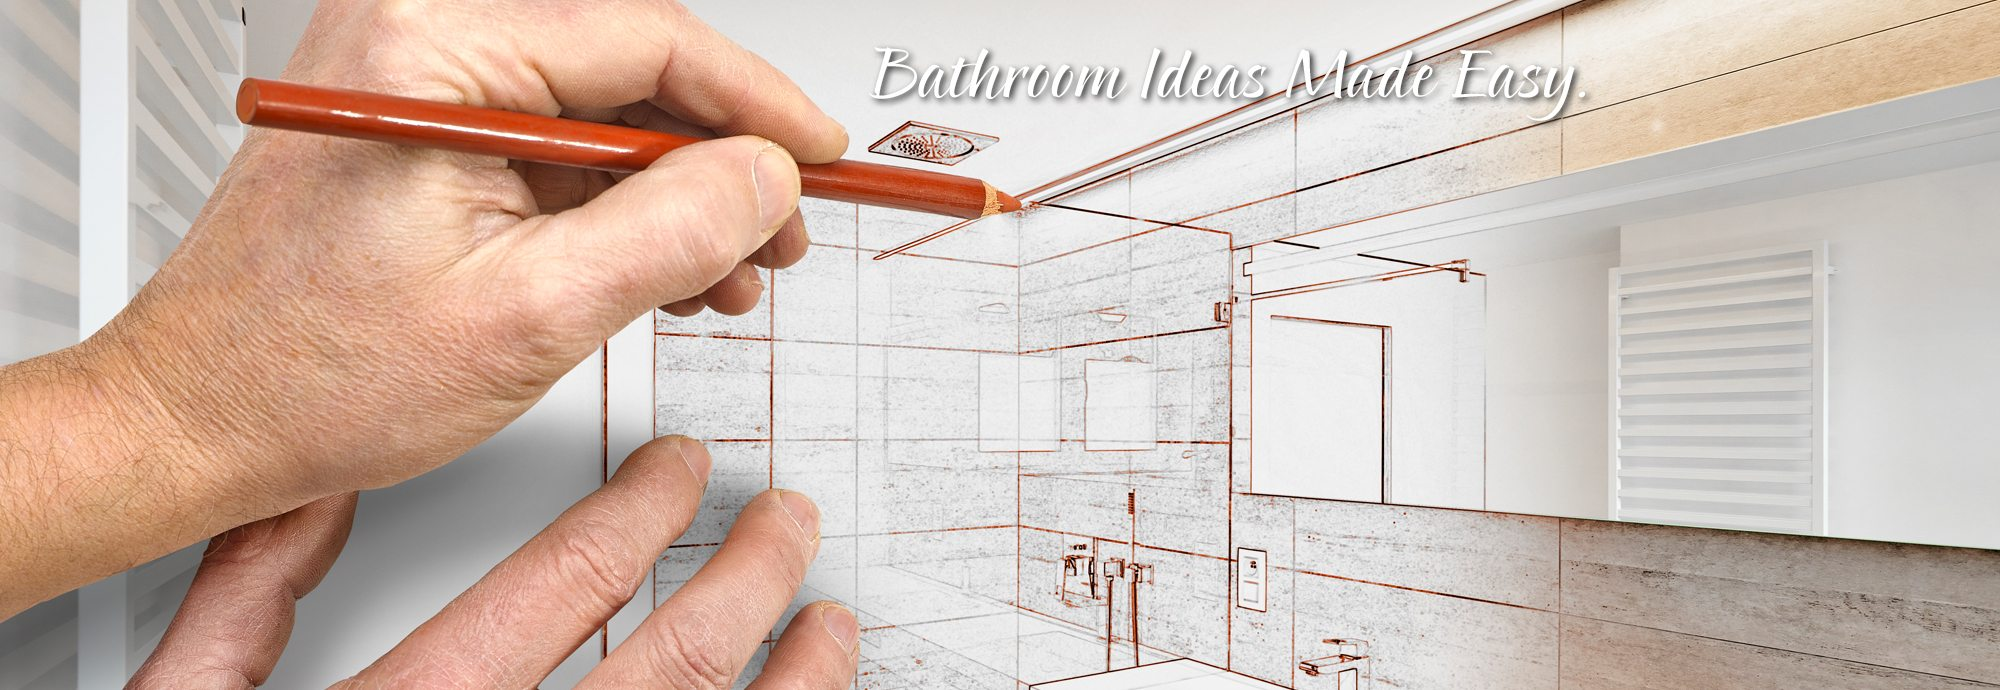 bathroom visualizer | DESIGN TOPS